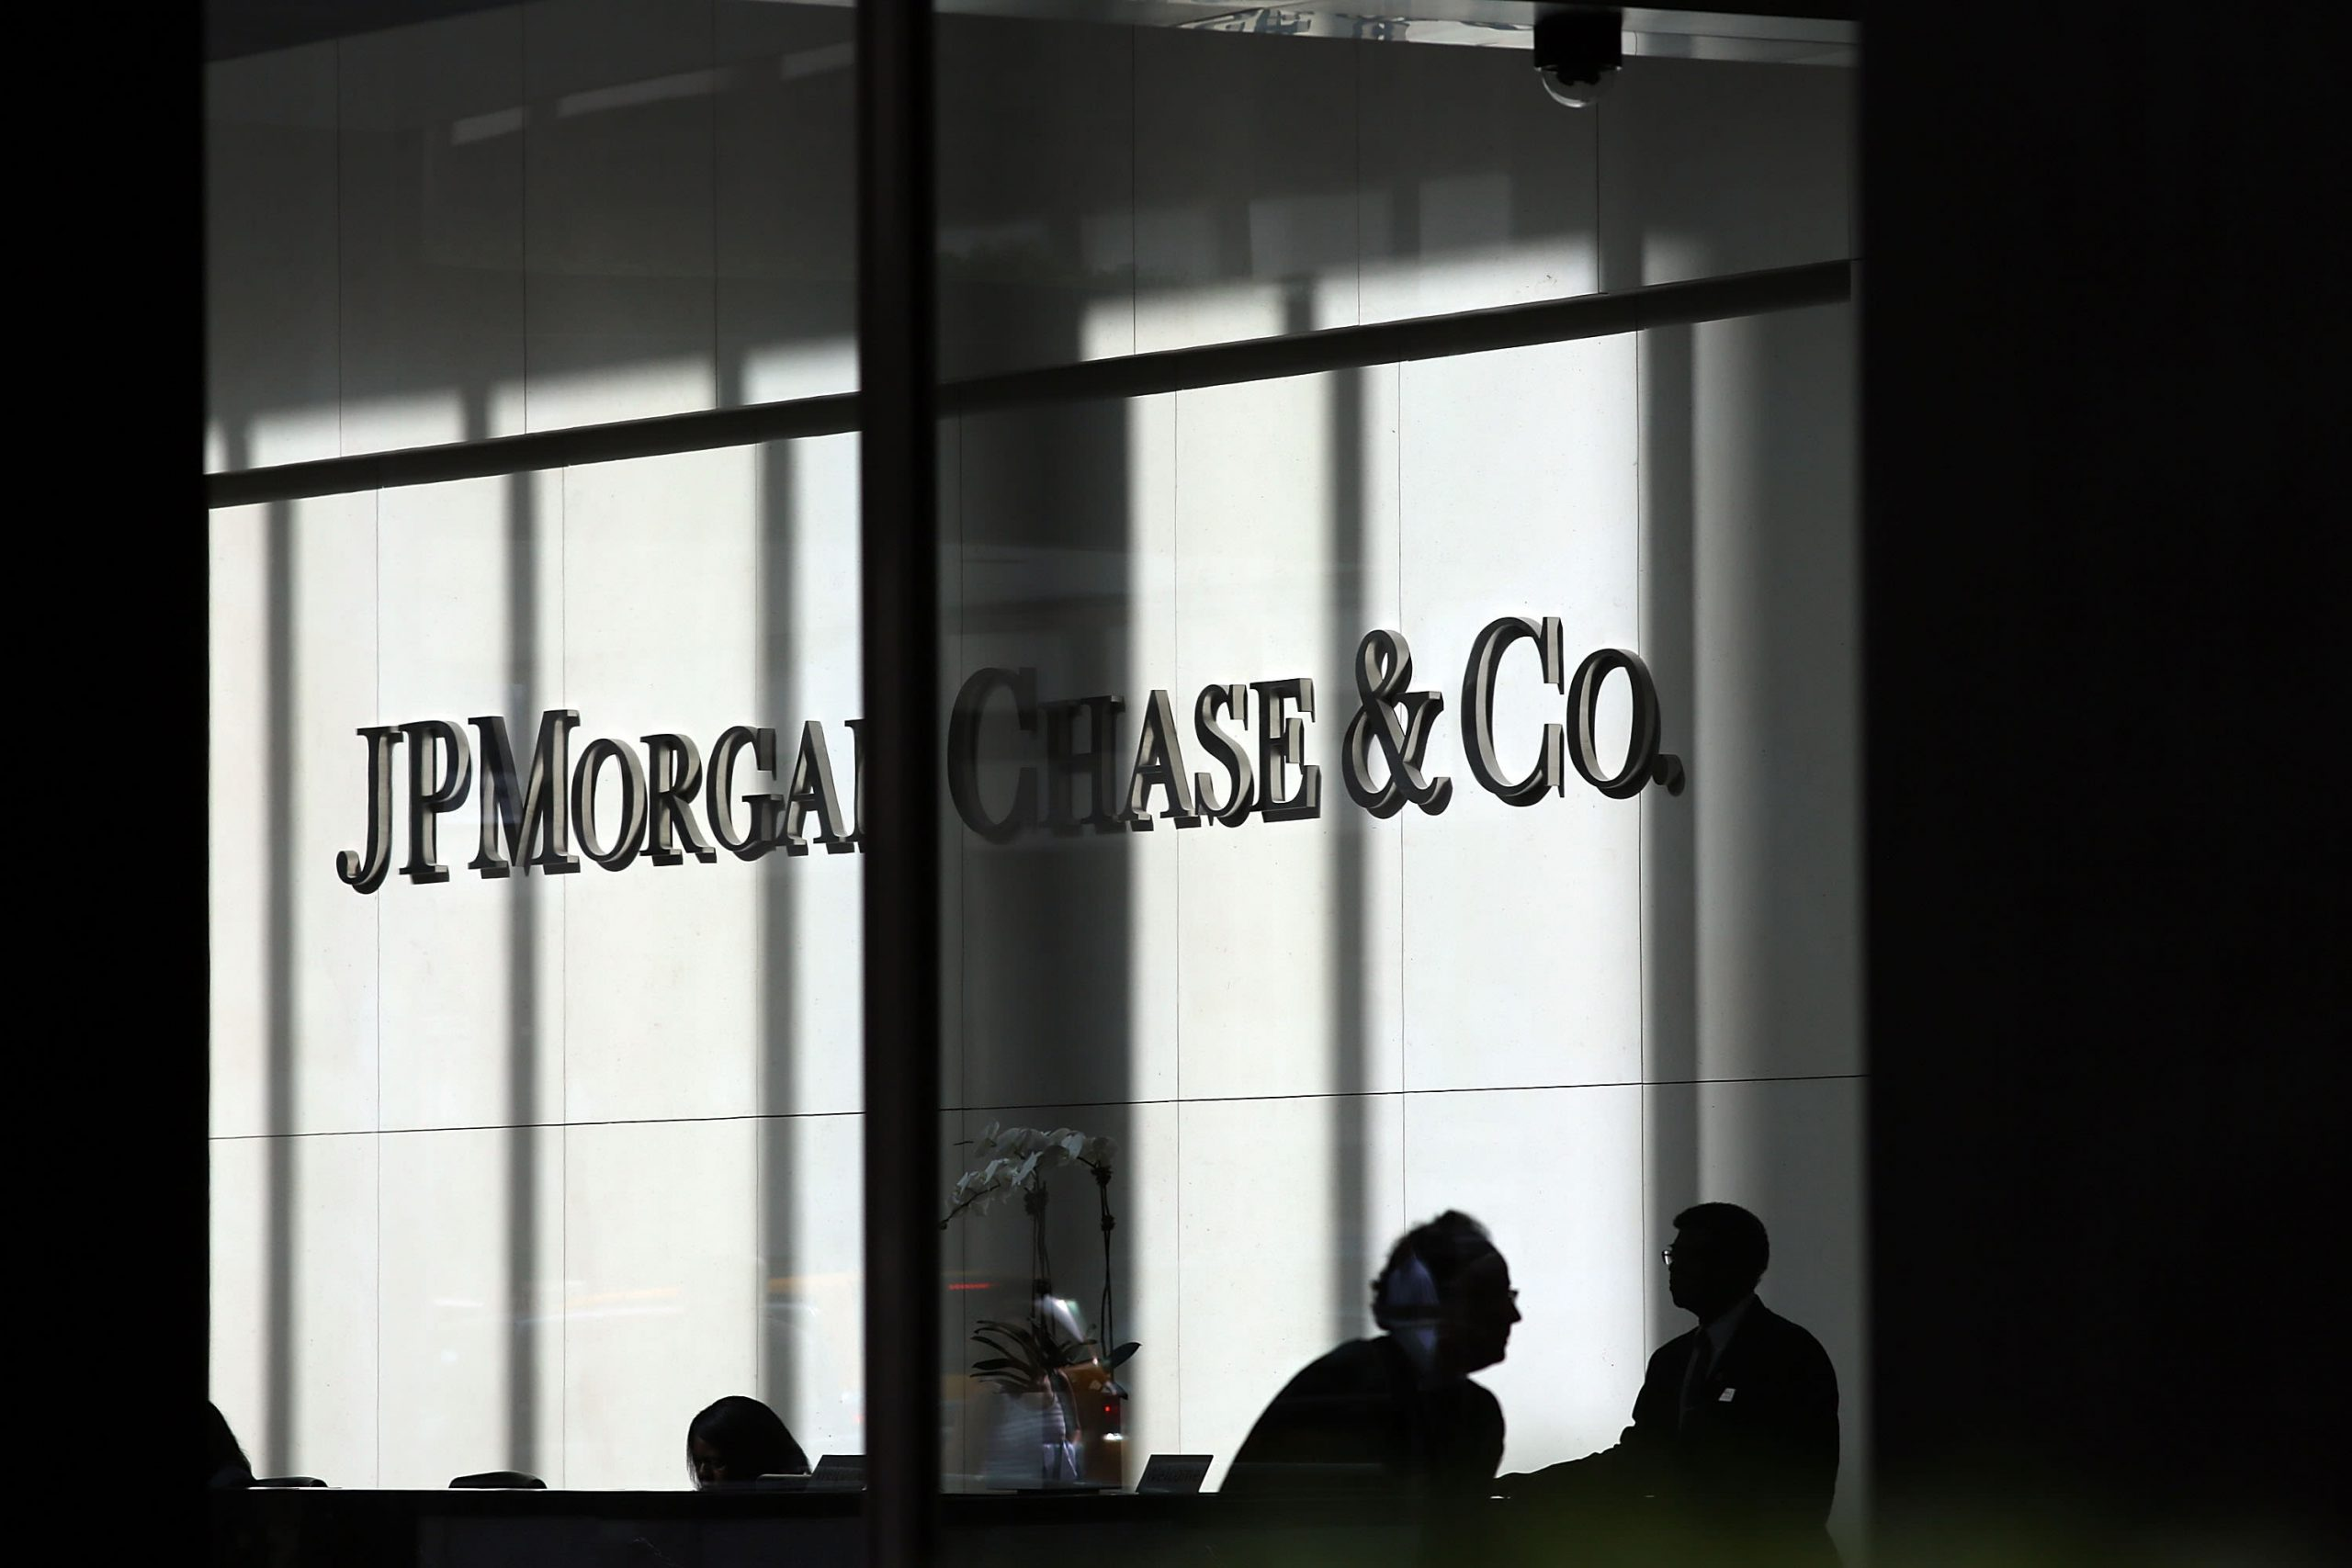 JPMorgan just revealed it thinks a lot of people won't pay their credit card bills